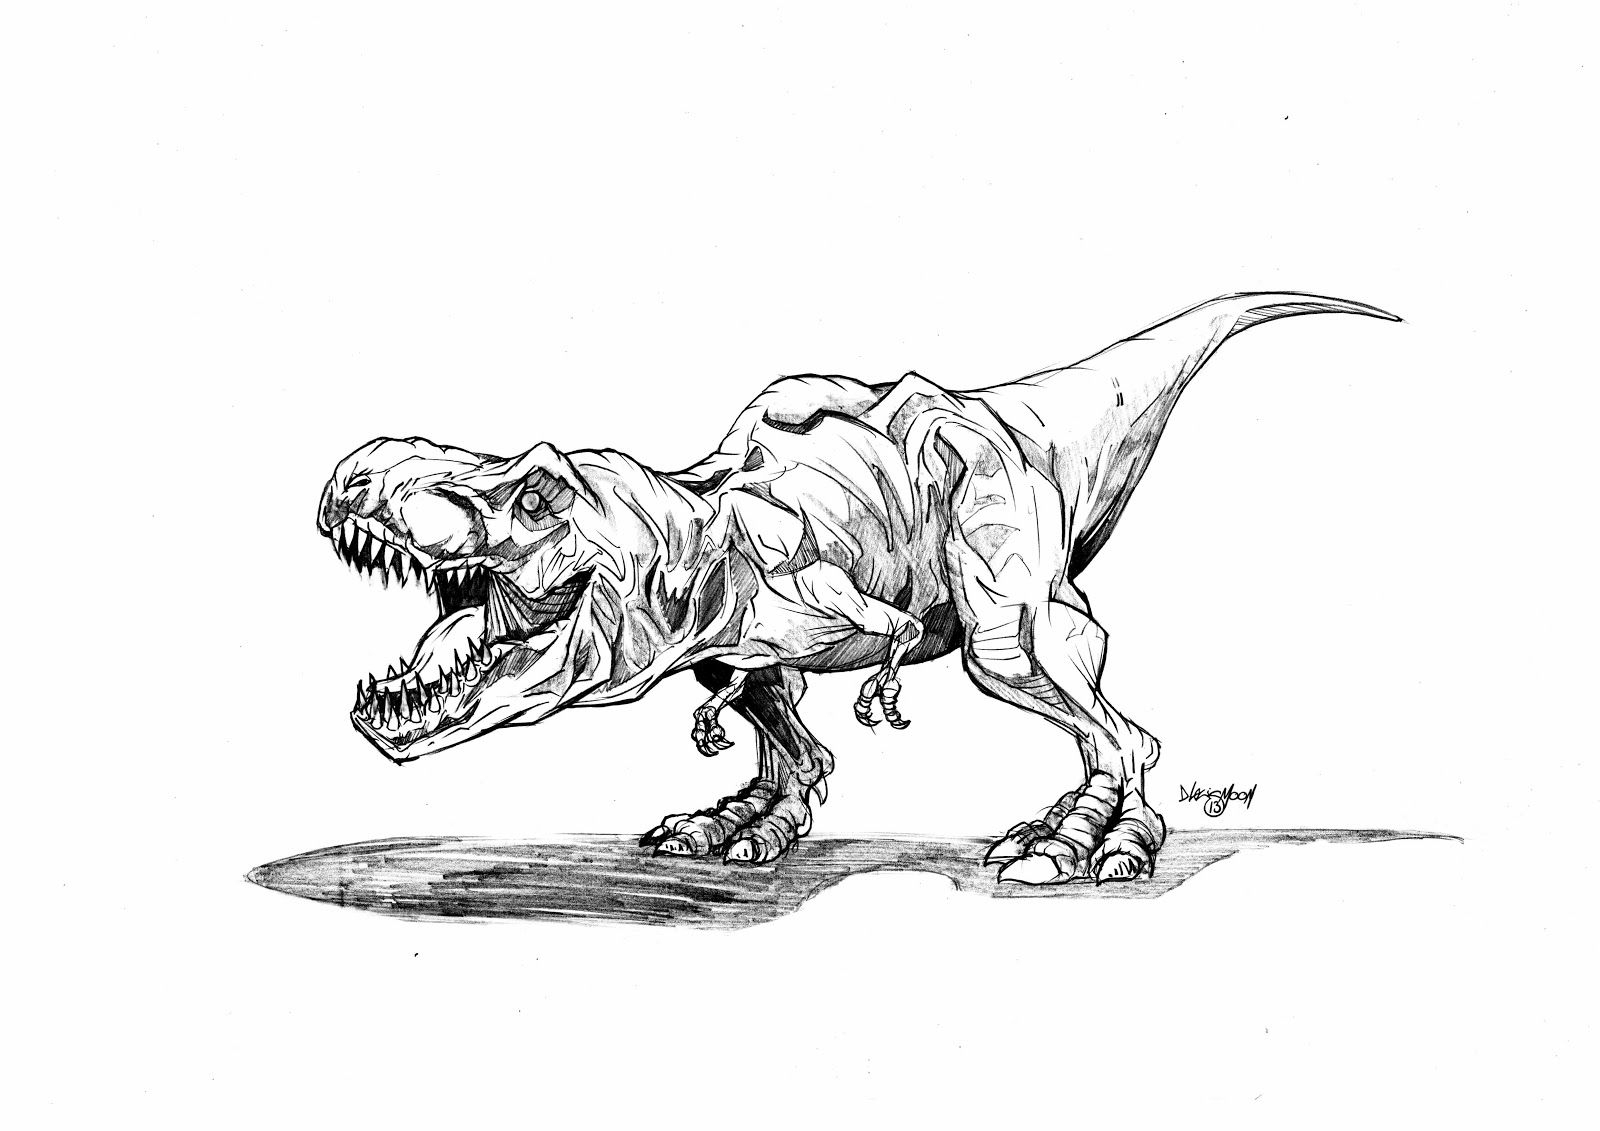 Jurassic Park Trex Colouring Pages | Jurassic Park Tattoo tout Coloriage Dinosaure Raptor